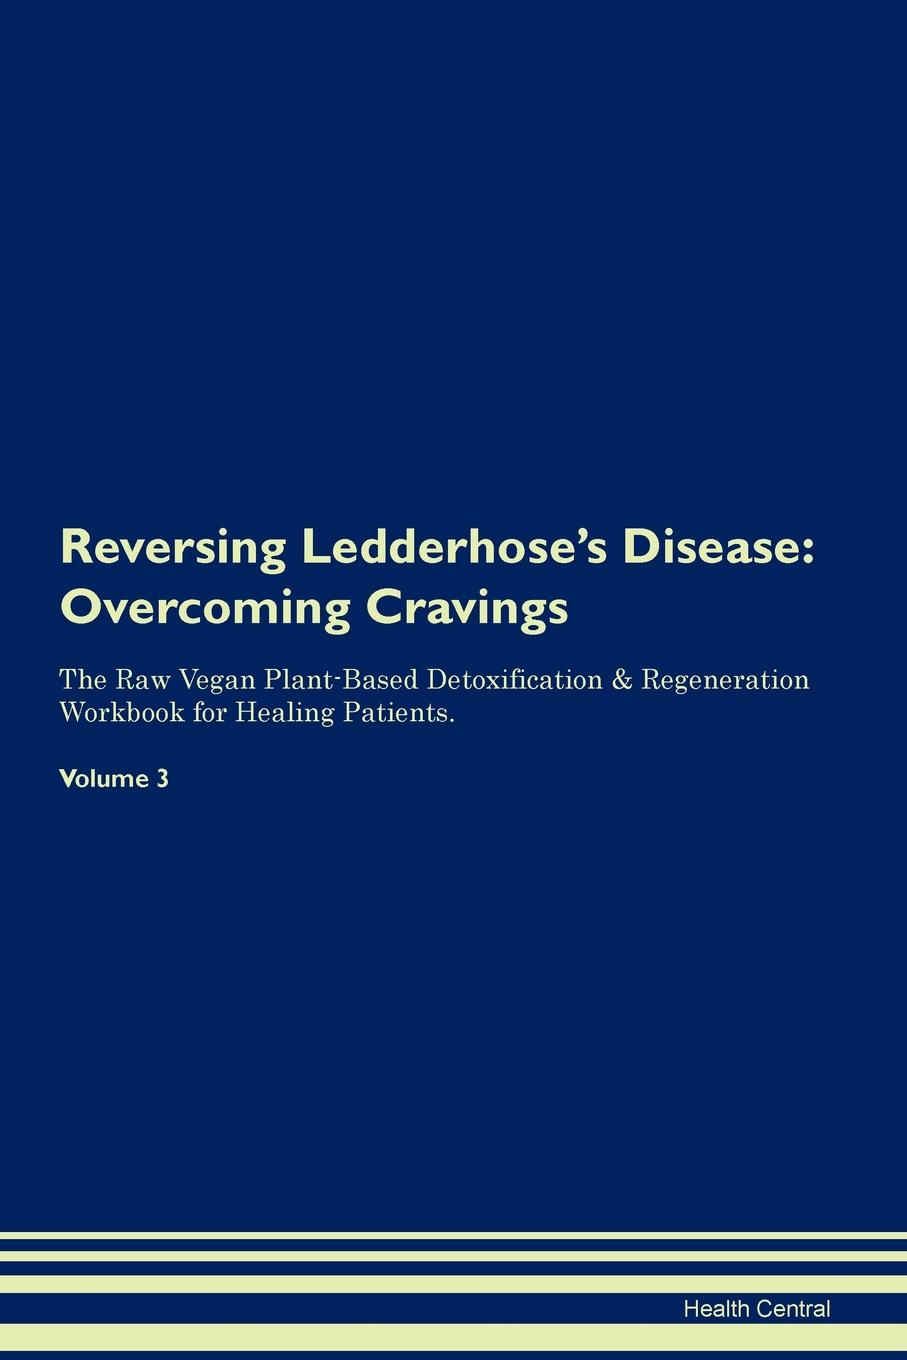 Health Central Reversing Ledderhose's Disease. Overcoming Cravings The Raw Vegan Plant-Based Detoxification & Regeneration Workbook for Healing Patients. Volume 3 health central reversing extramammary paget s disease overcoming cravings the raw vegan plant based detoxification regeneration workbook for healing patients volume 3